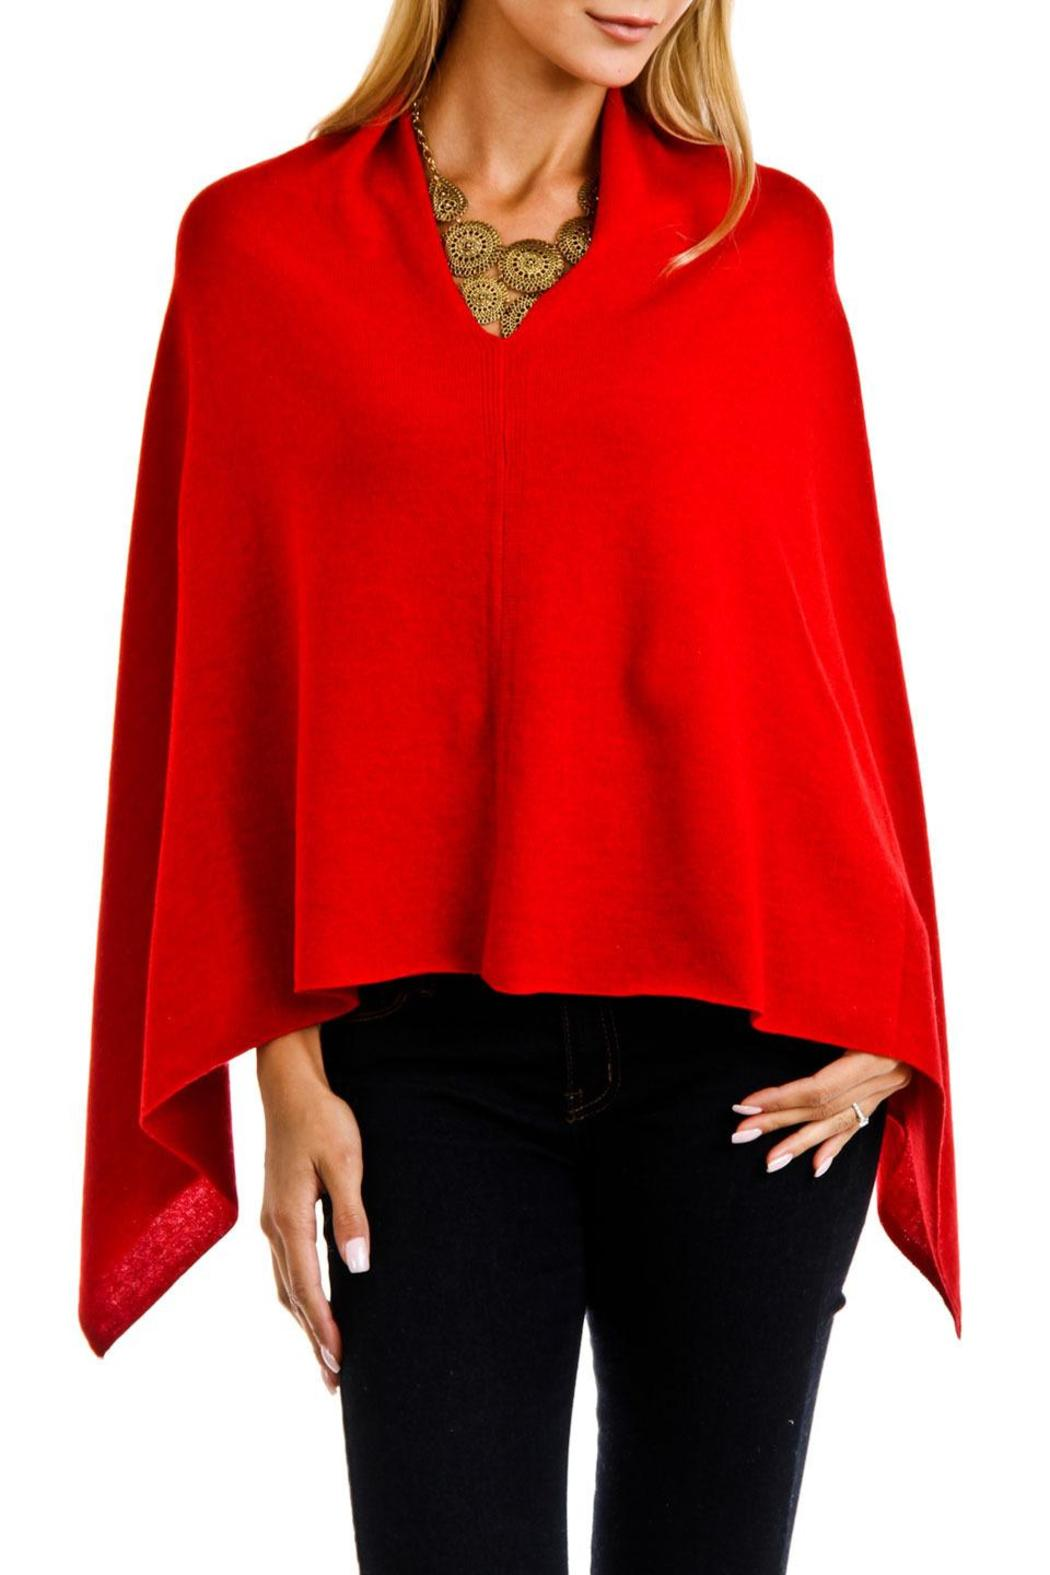 Venezia Cashmere Red Cashmere Poncho Wrap - Front Cropped Image